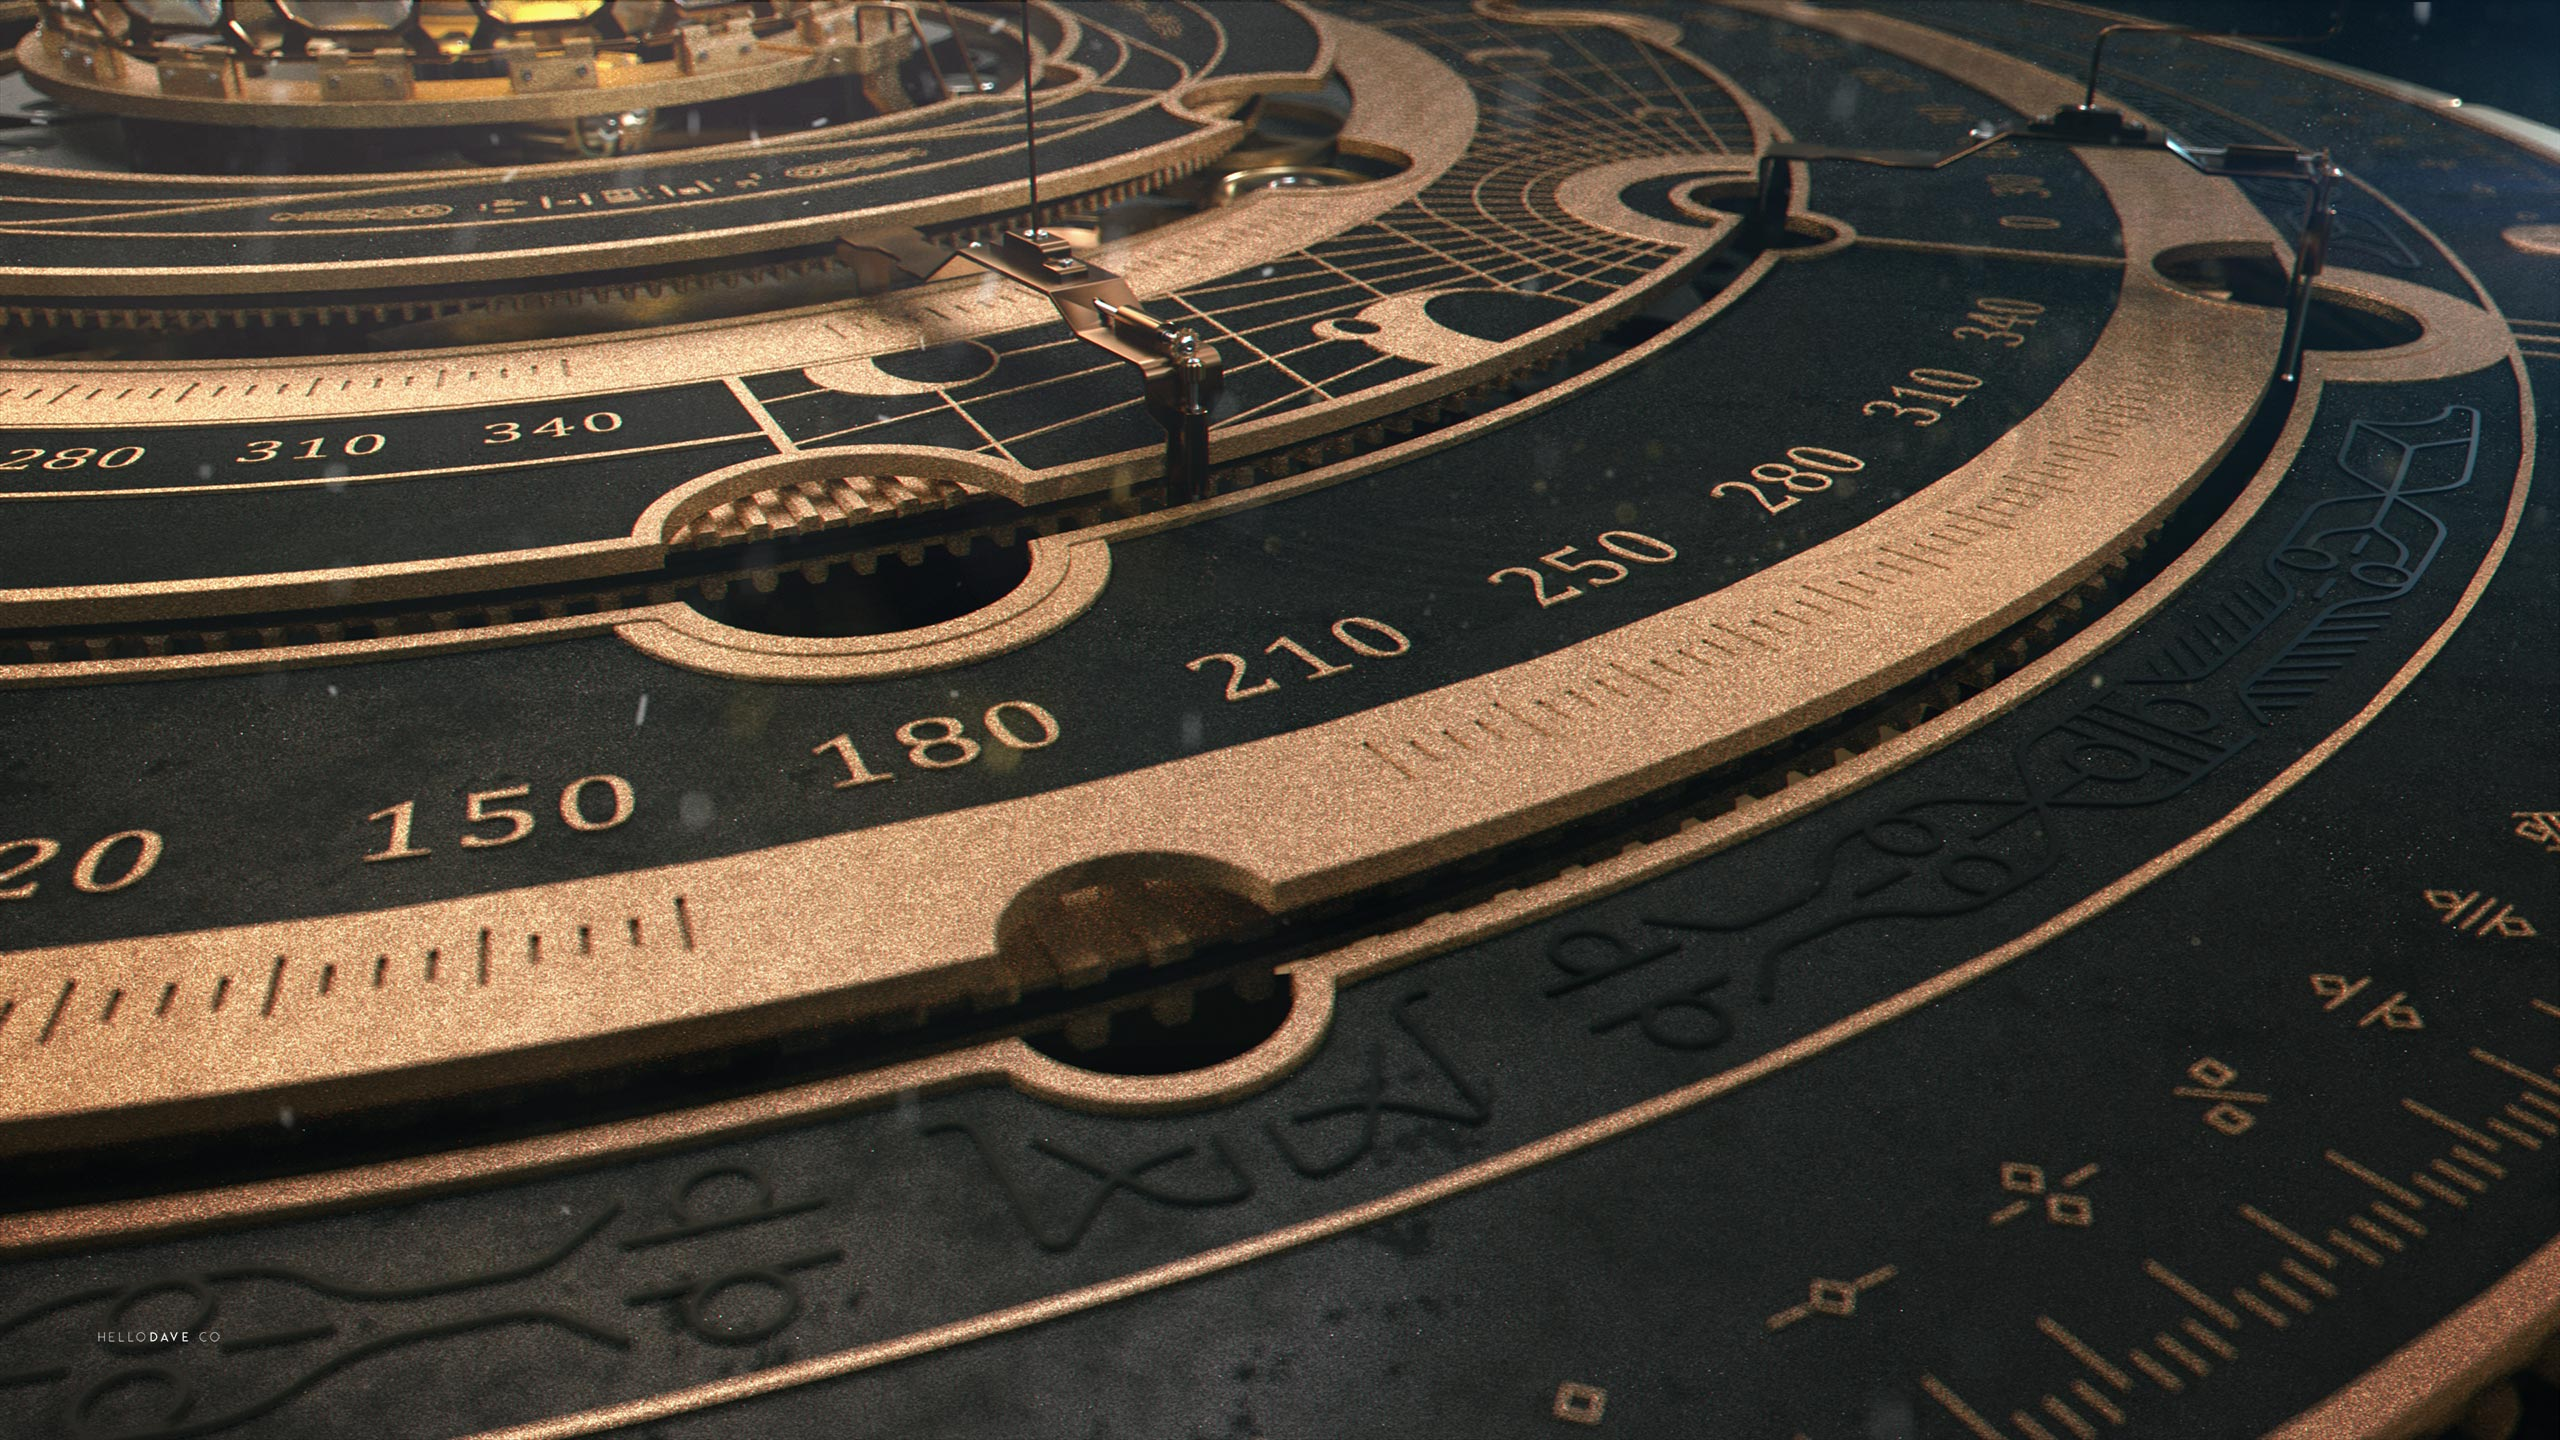 Steampunk_table_astrolabe_05_2K